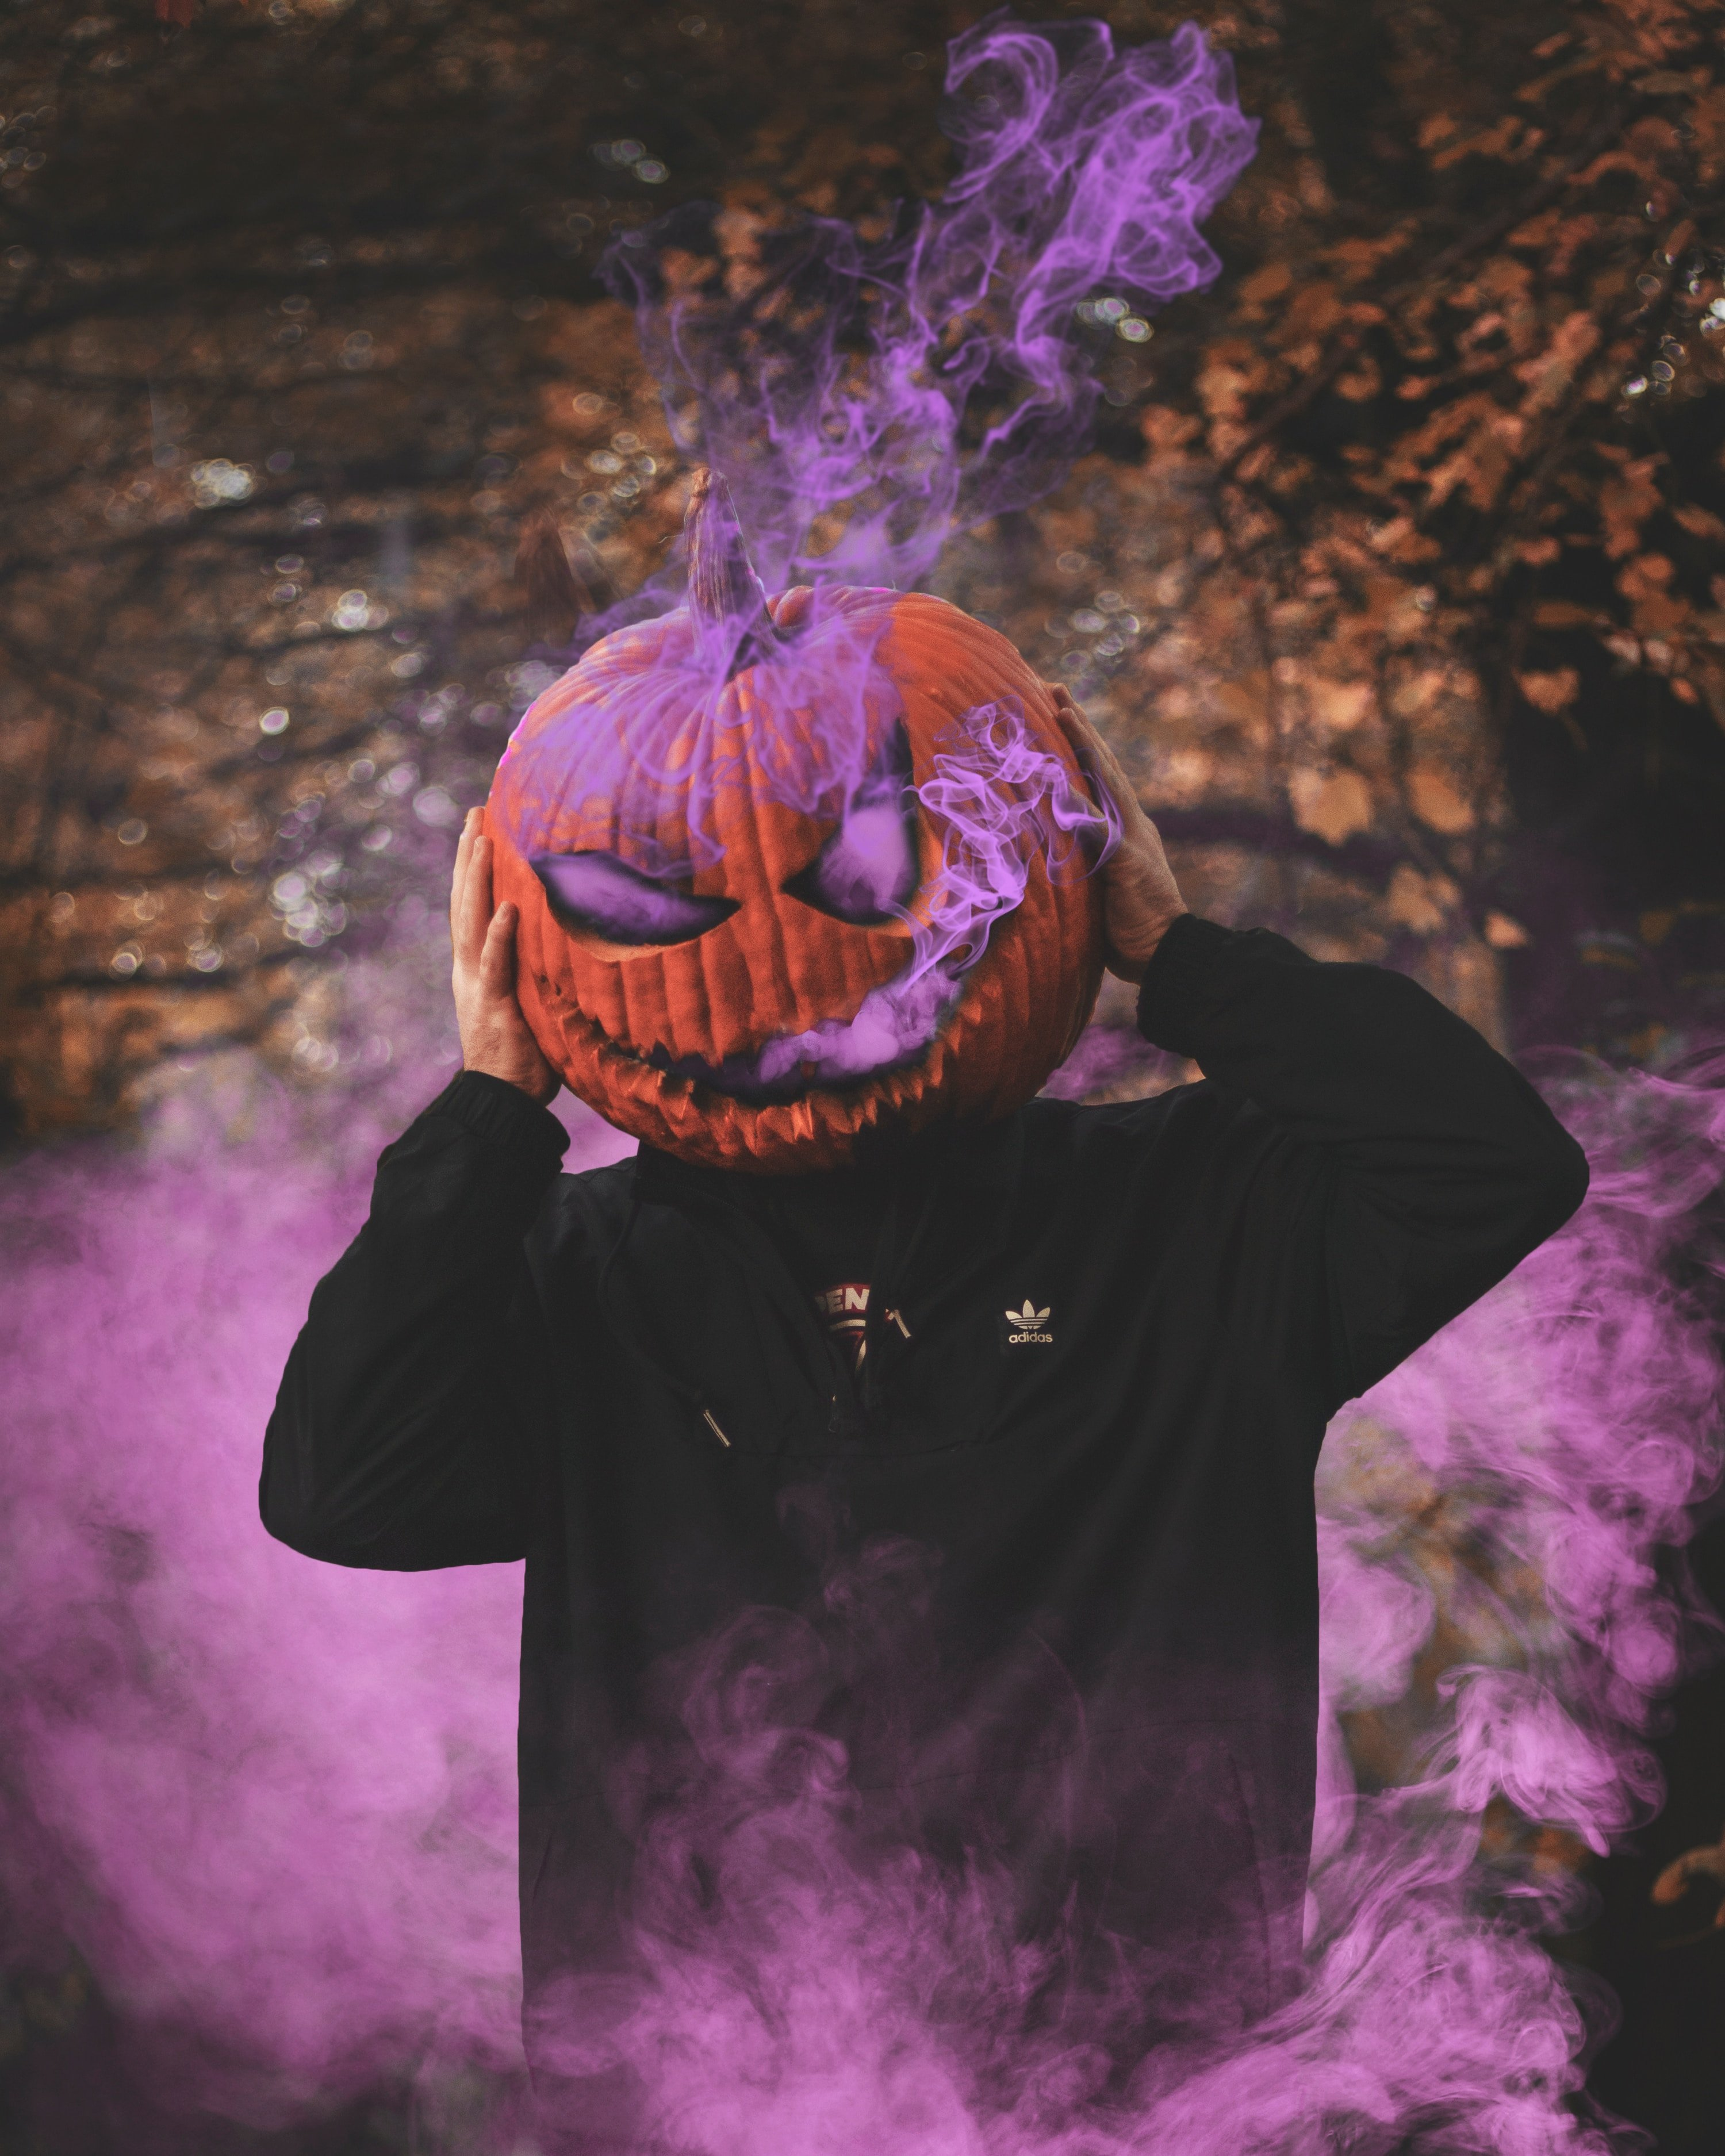 A scary Jack-O-Lantern inspired costume | Photo by Daniel Lincoln on Unsplash